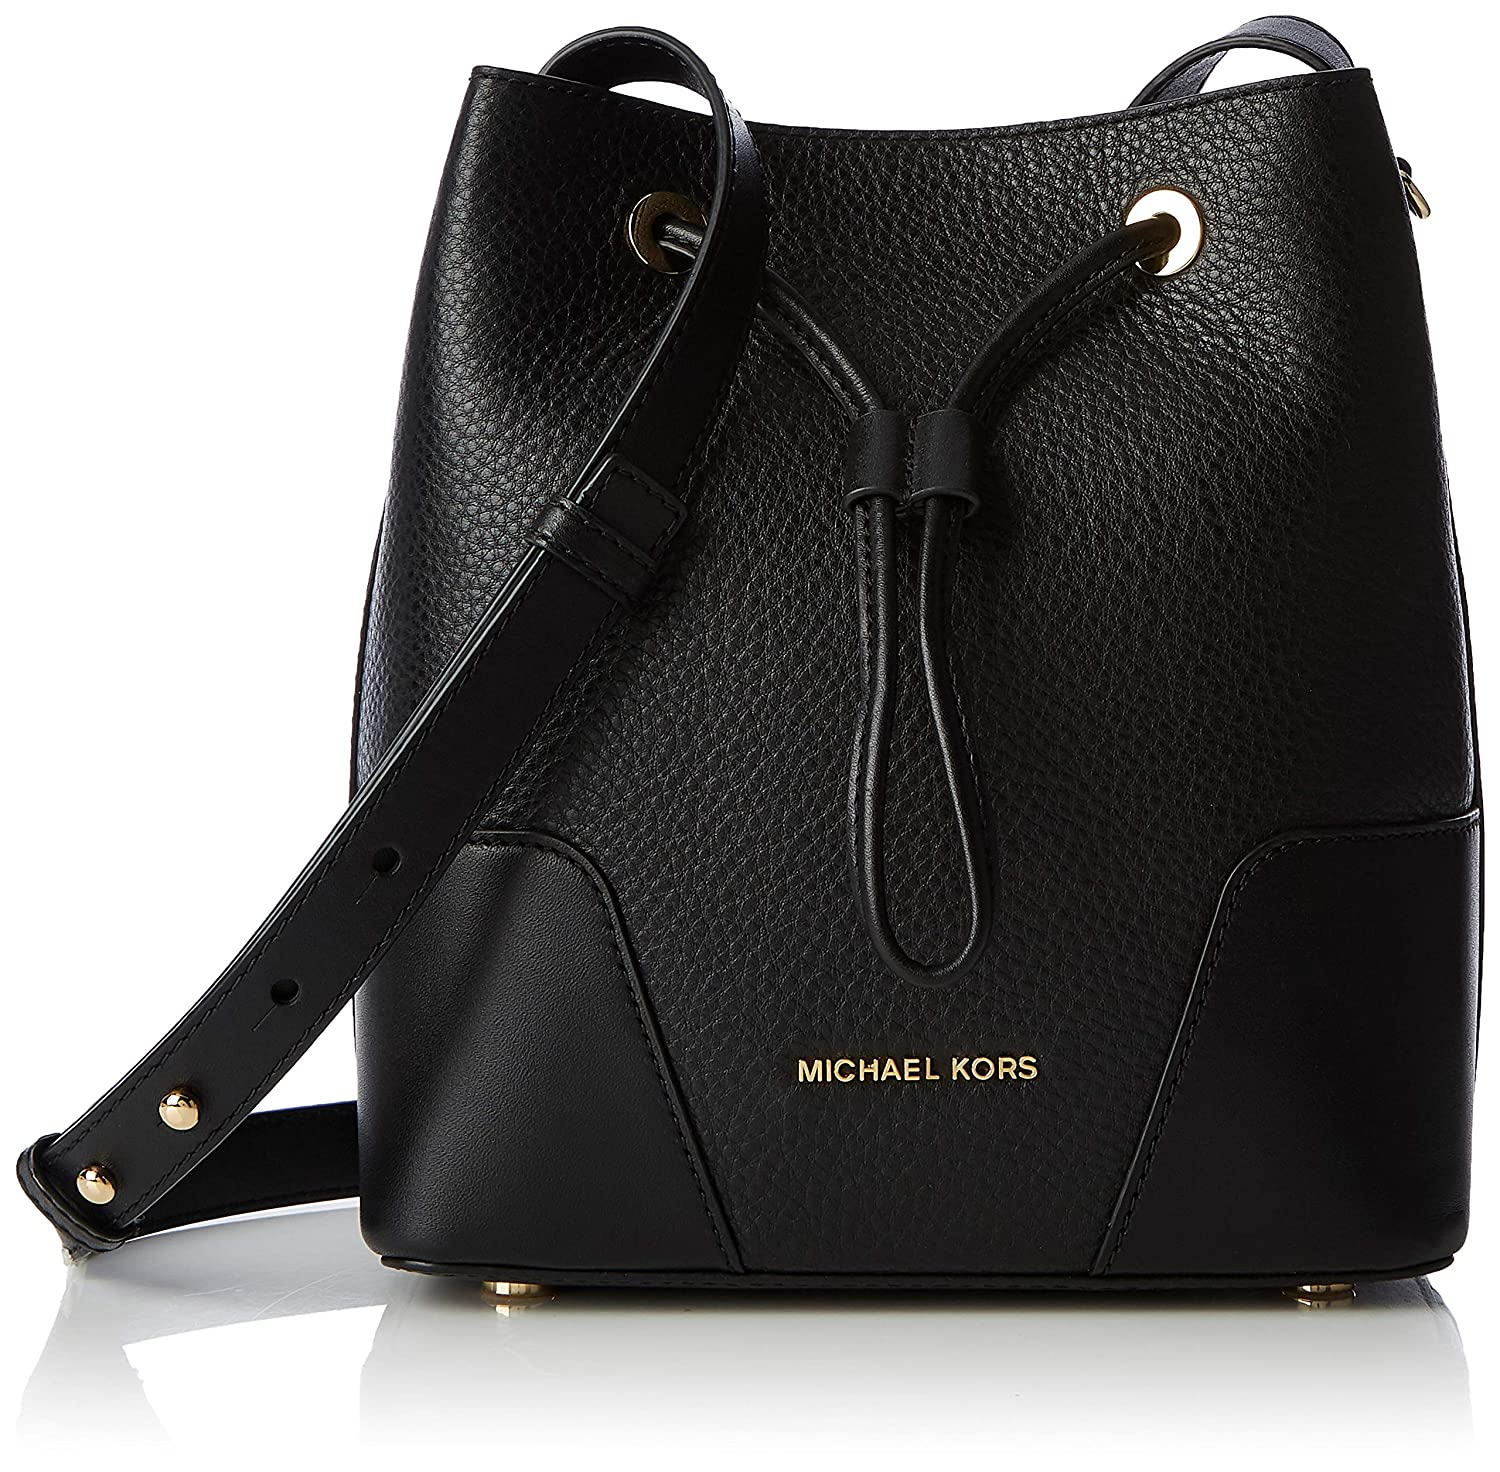 517341e096183a Michael Kors Cary Pebbled Leather Crossbody Bag- Black: Handbags: Amazon.com